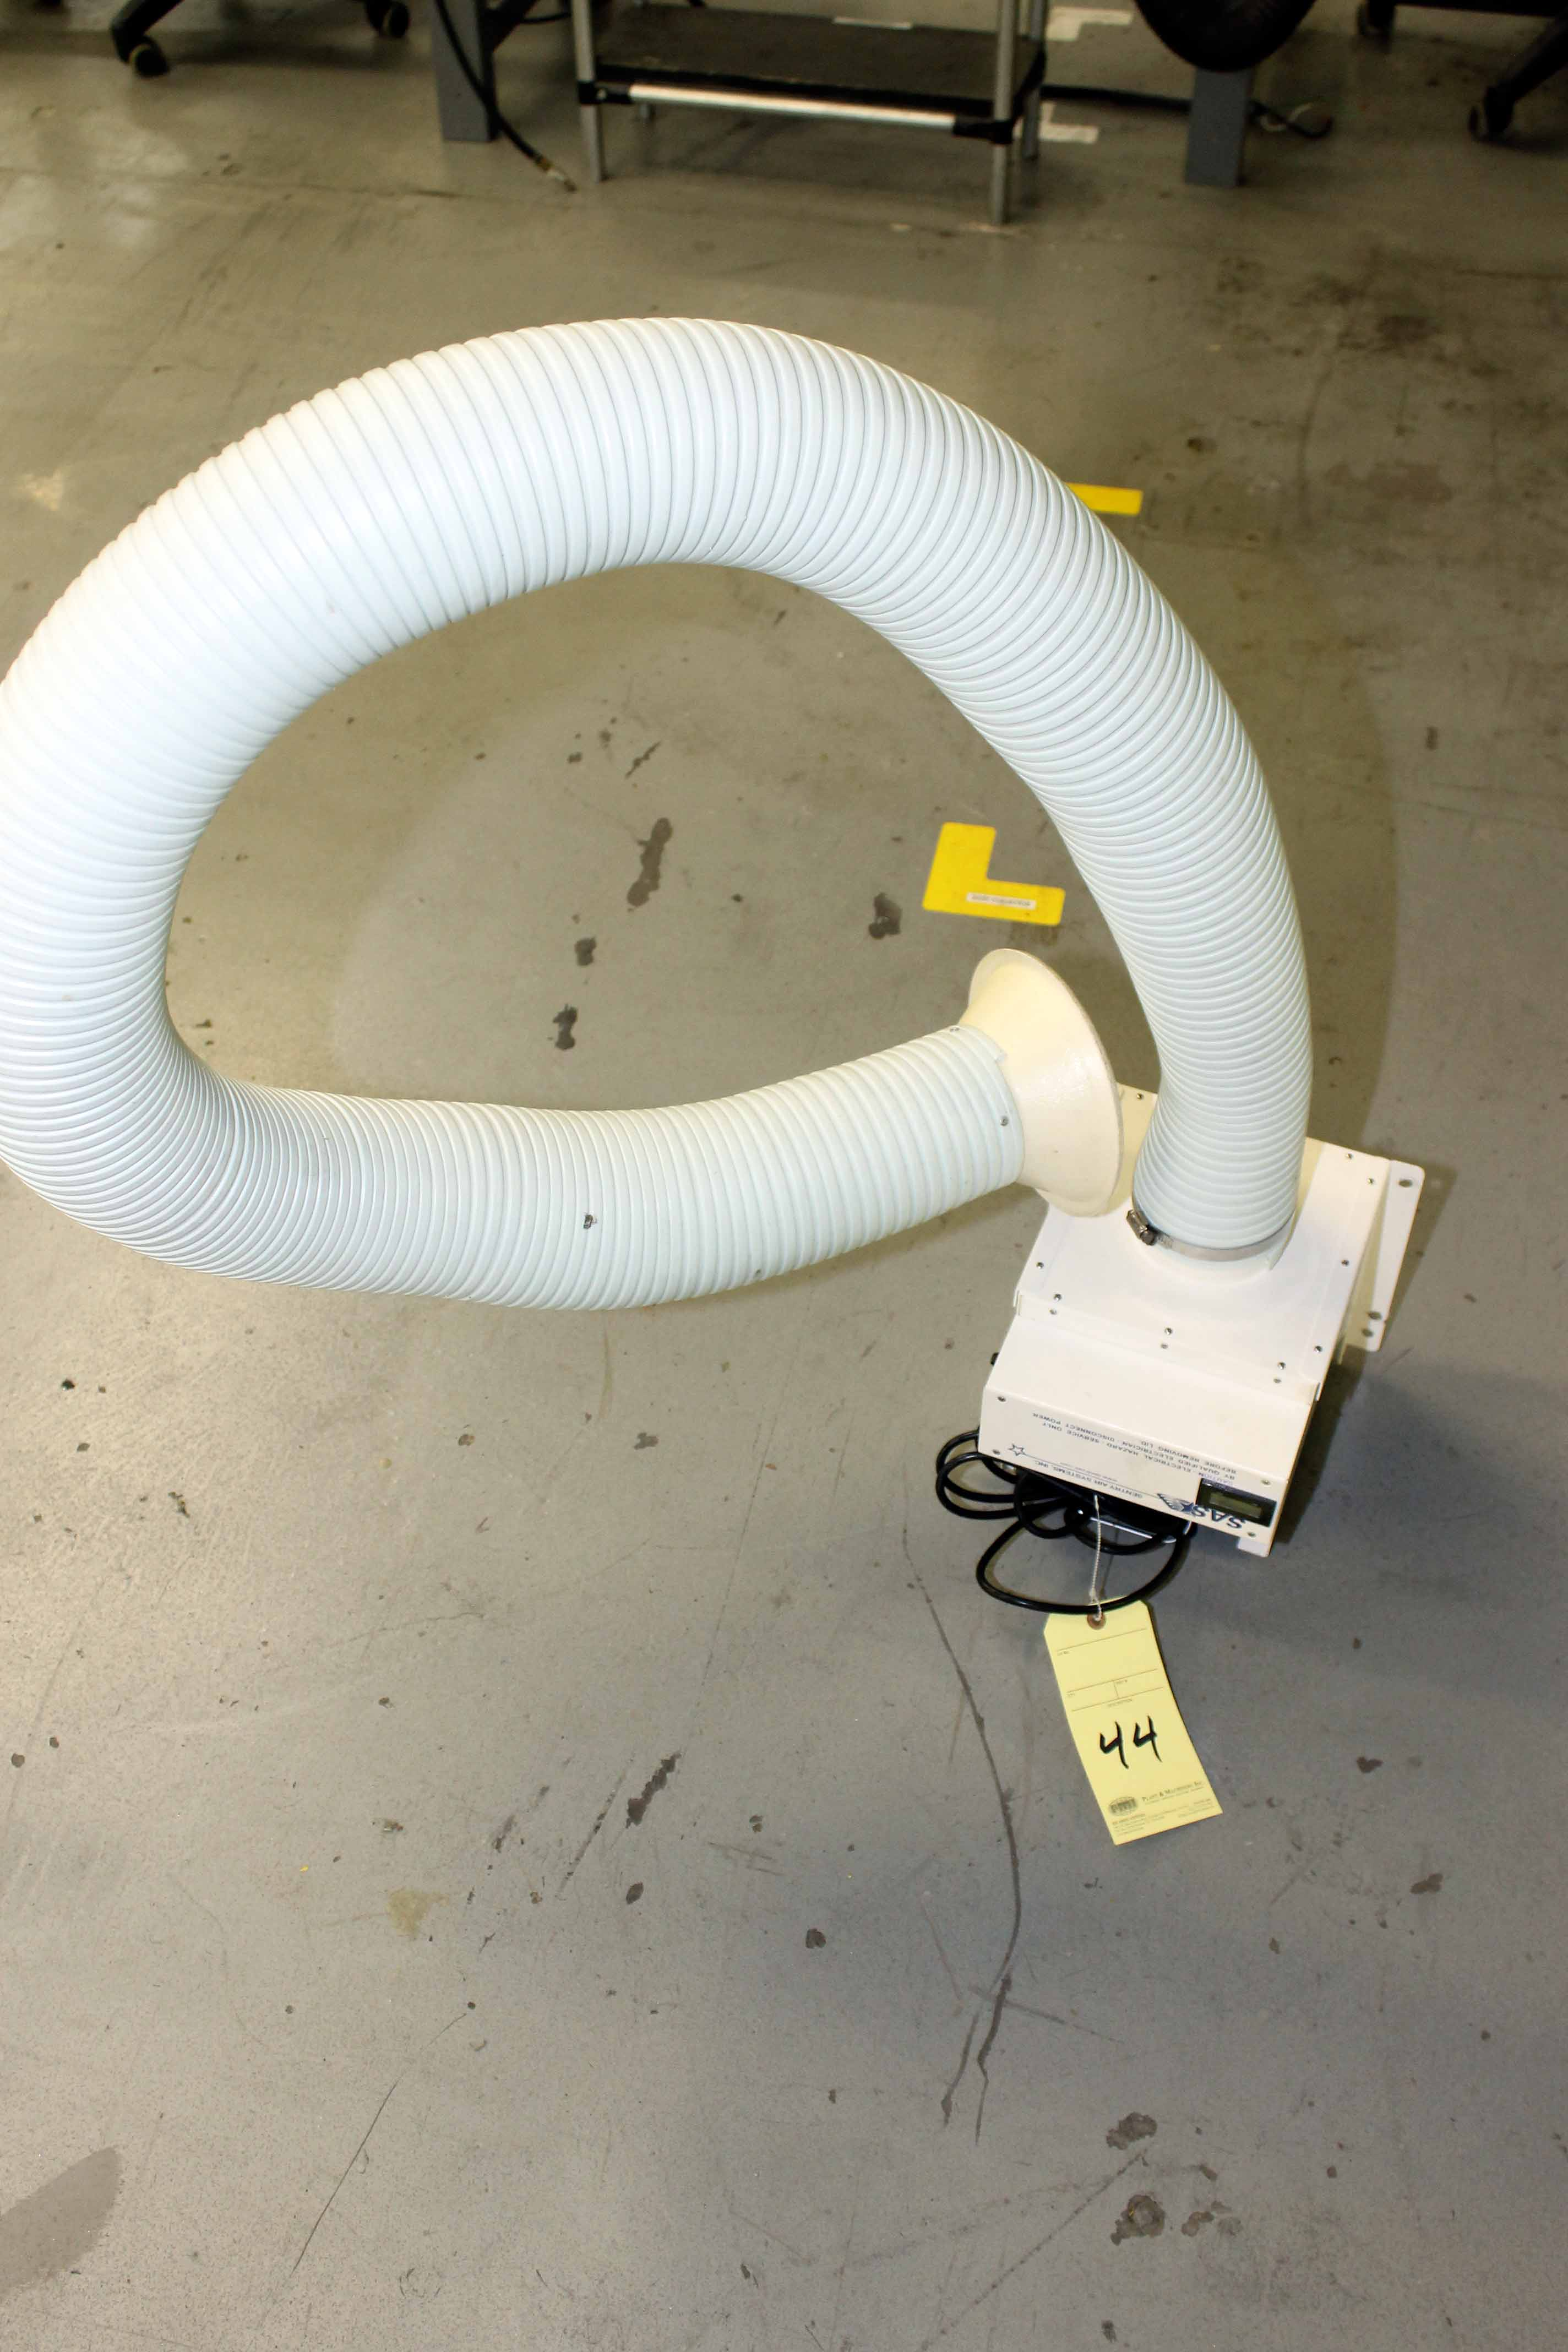 Lot 44 - FUME EXTRACTOR, SAS MDL. FS-200-XKN (Location 2 - Fallstone A)